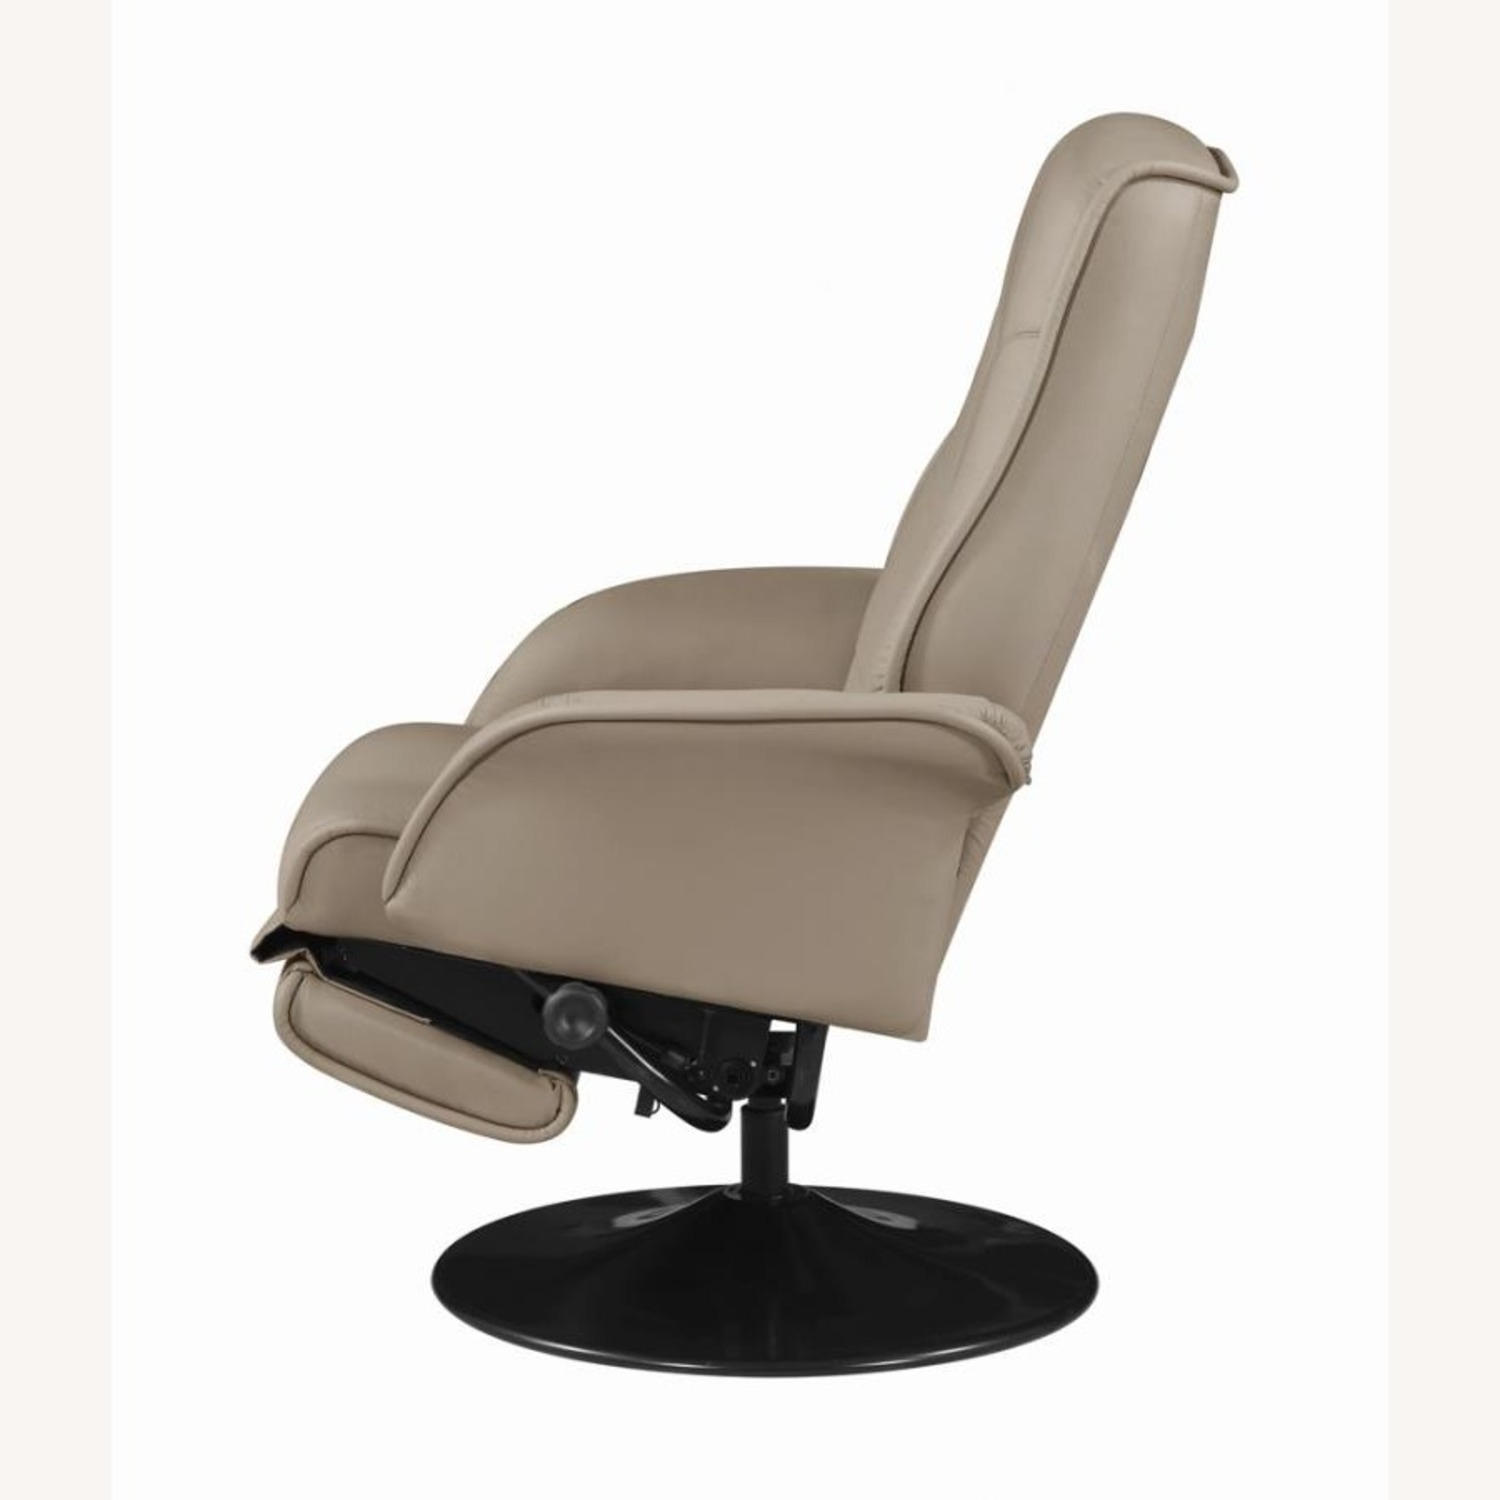 Swivel Recliner In Classic Beige Leatherette - image-3